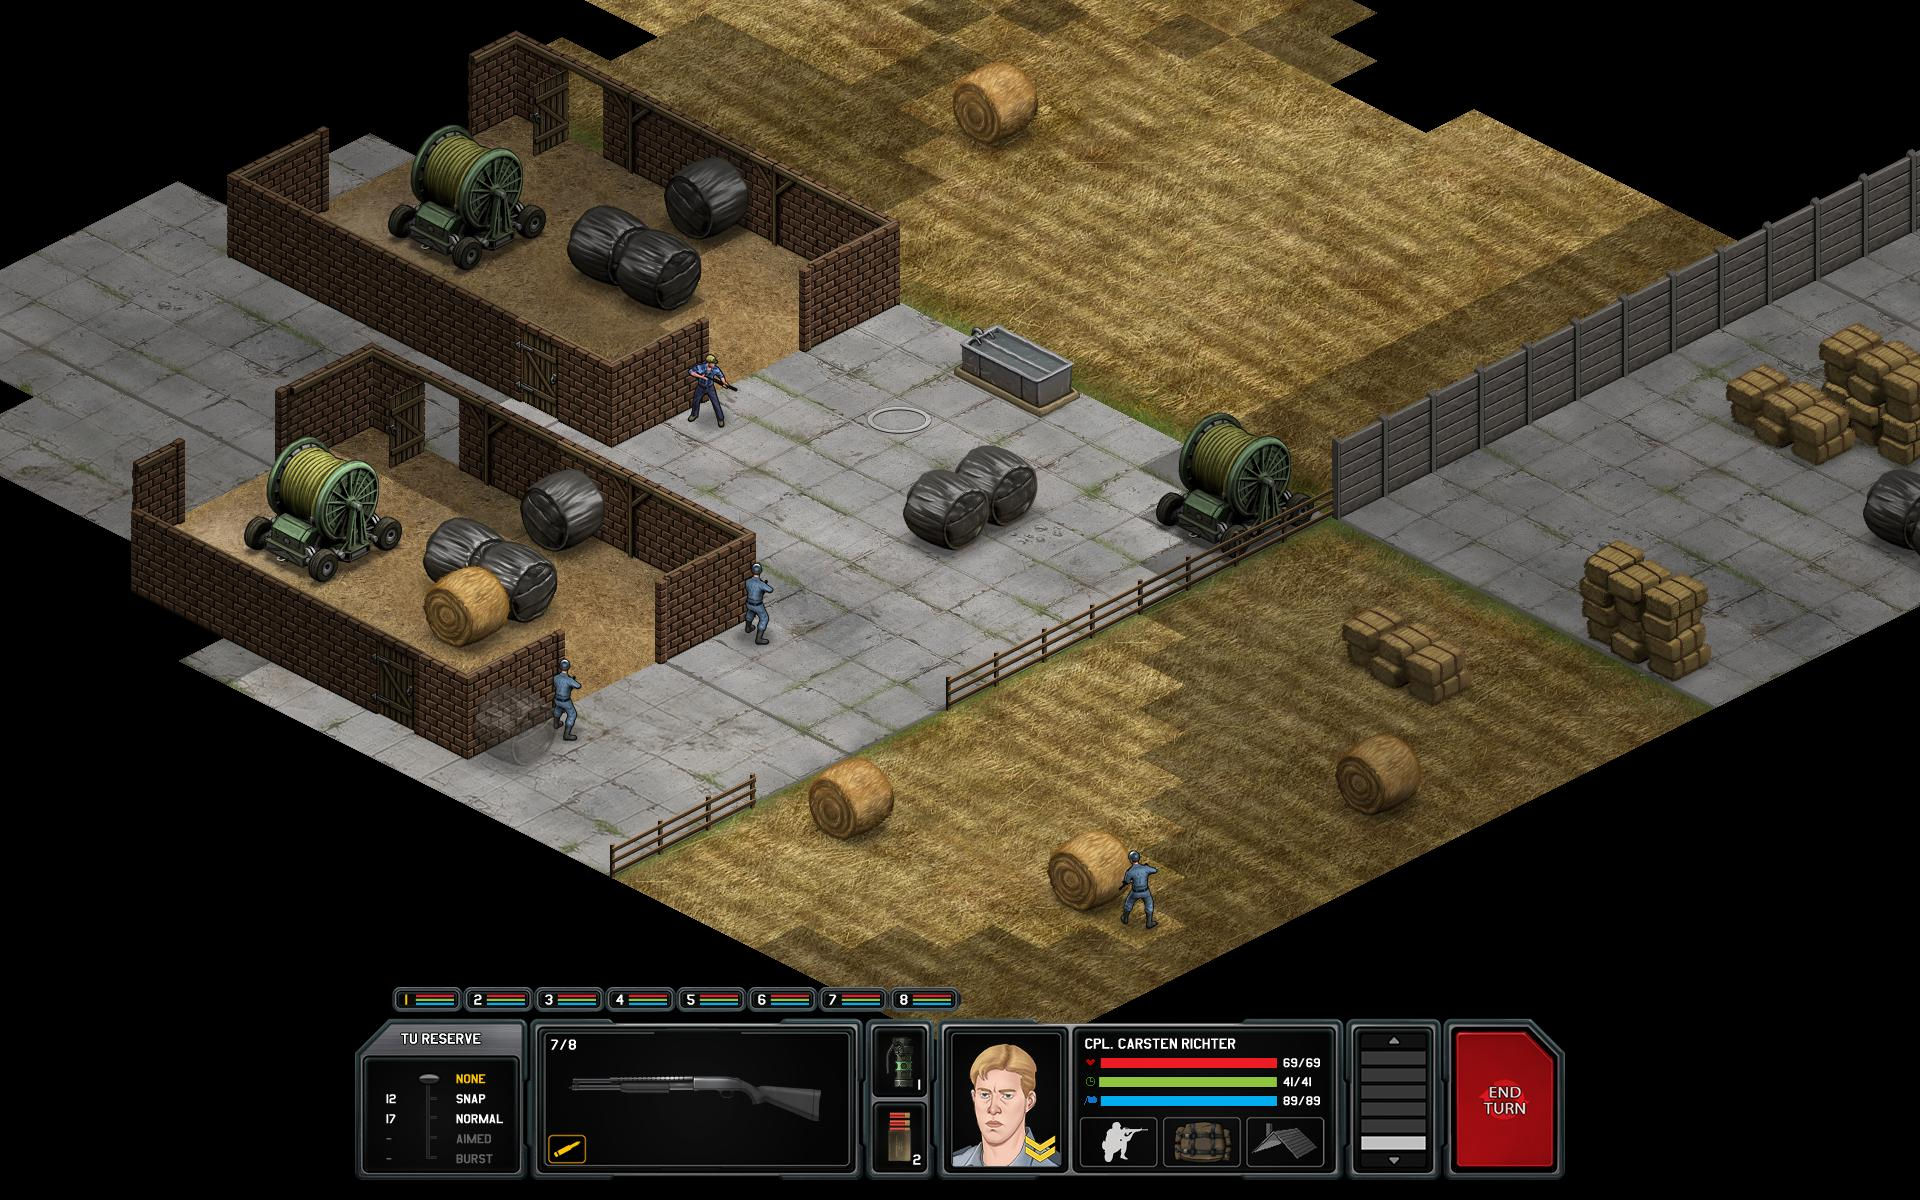 One last note, the NPCs in Xenonauts are freaking amazing. Some are just helpless civilians and do stupid civilian things, but the guys with guns (soldiers and farmers) actually use thier guns to defend themselves. I've had some levels be finished by some random farmer killing an alien before my guys got to the part of the map. Well played Goldhawk Interactive, well played.